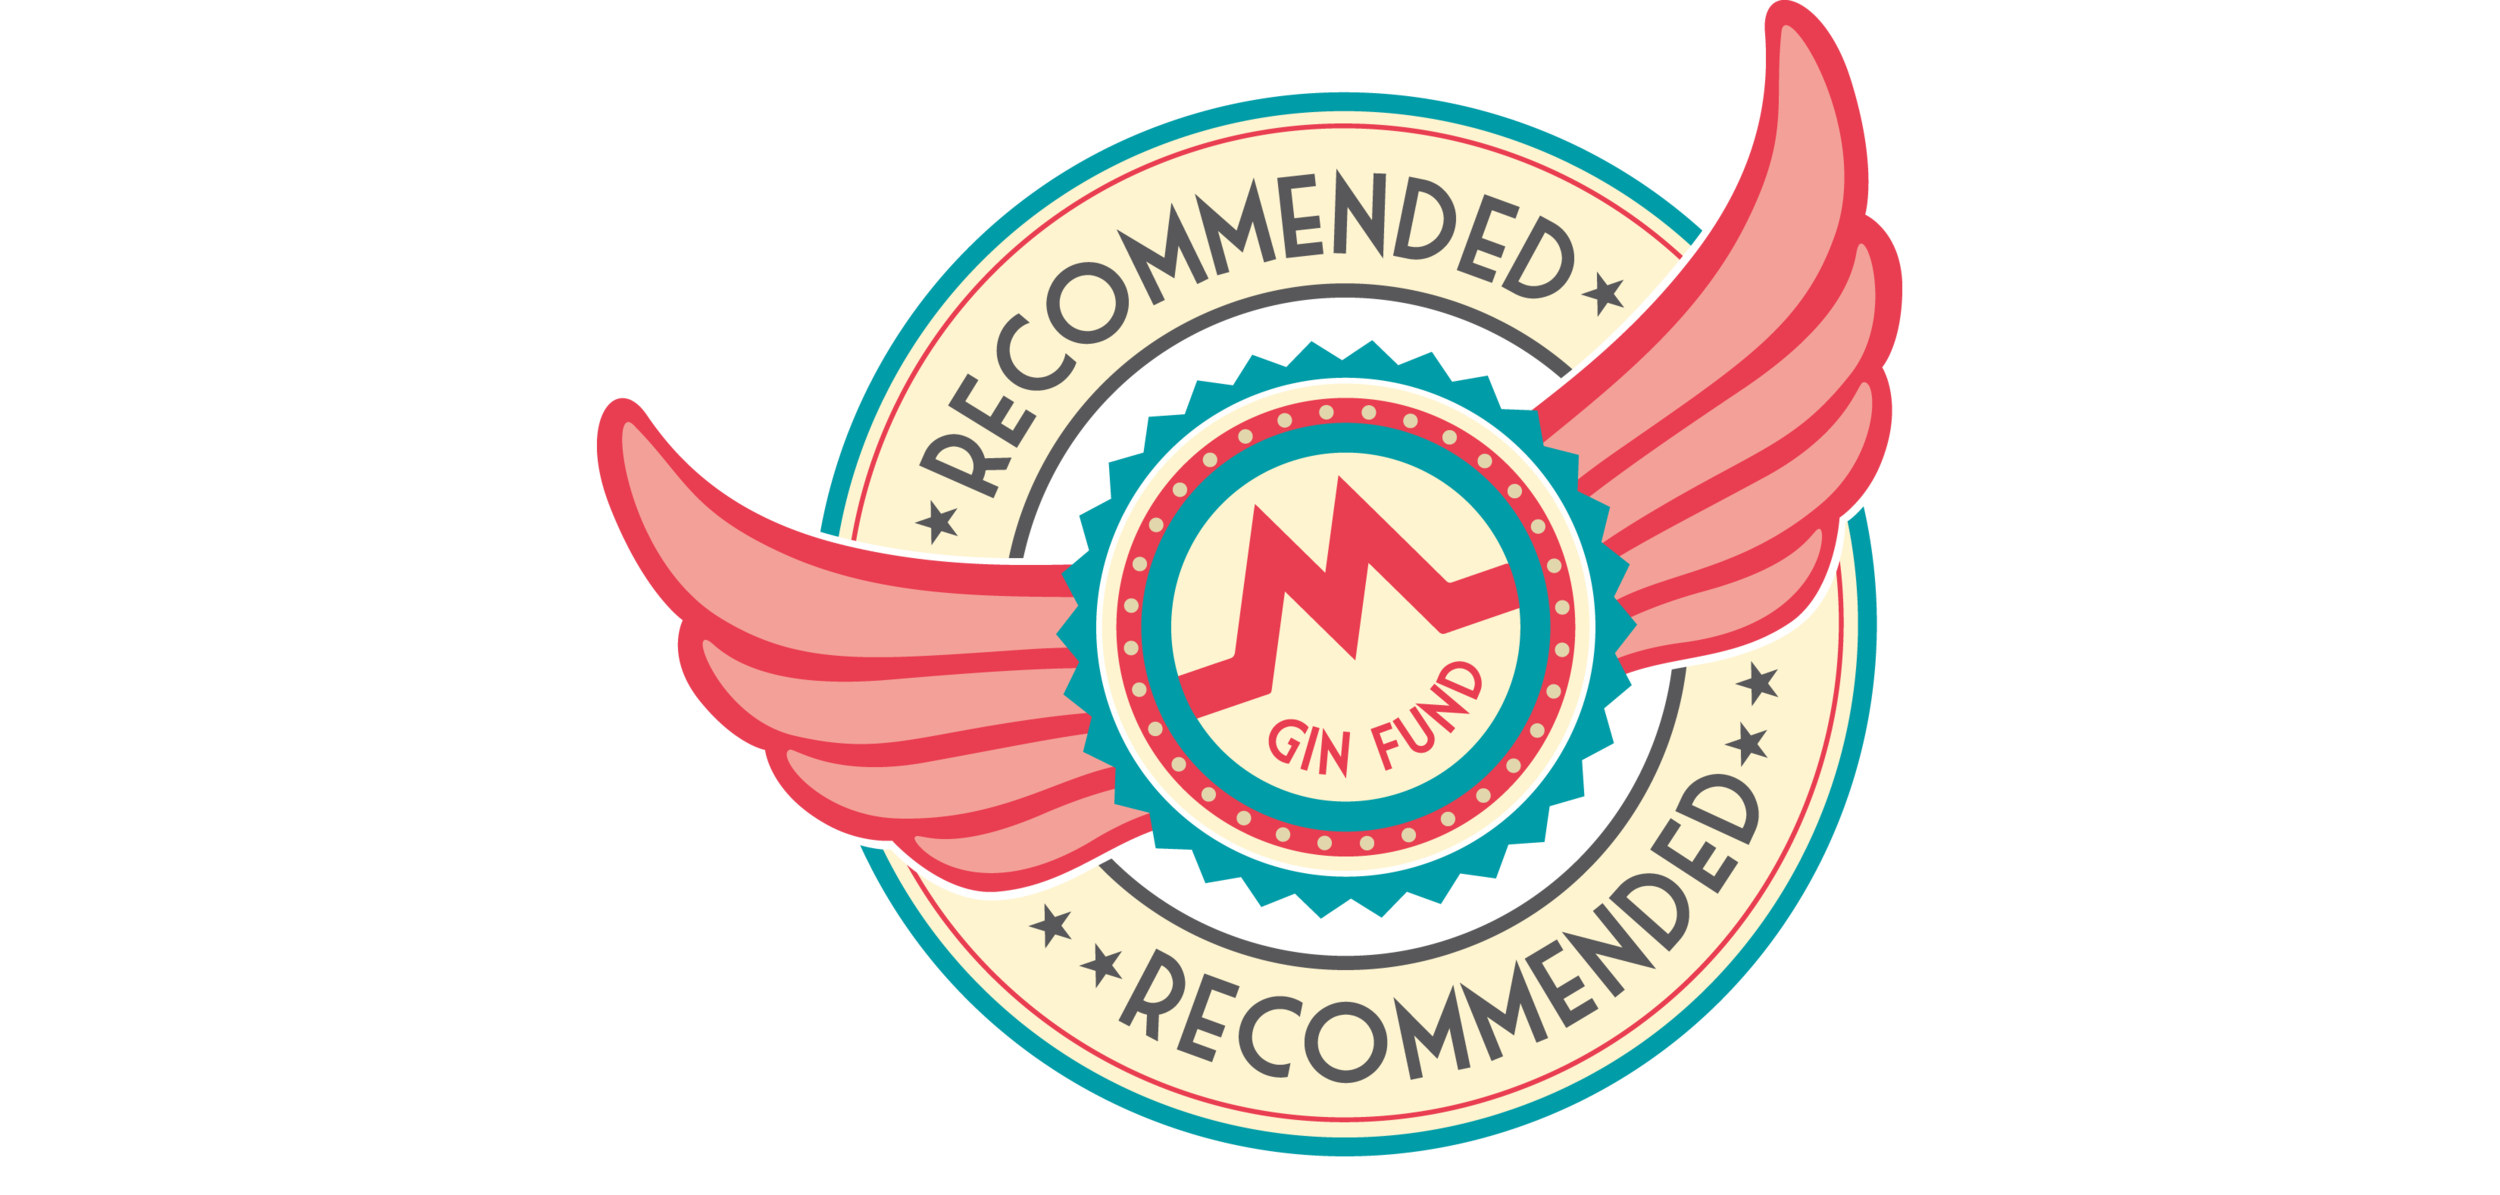 MGF recommended_w--.png